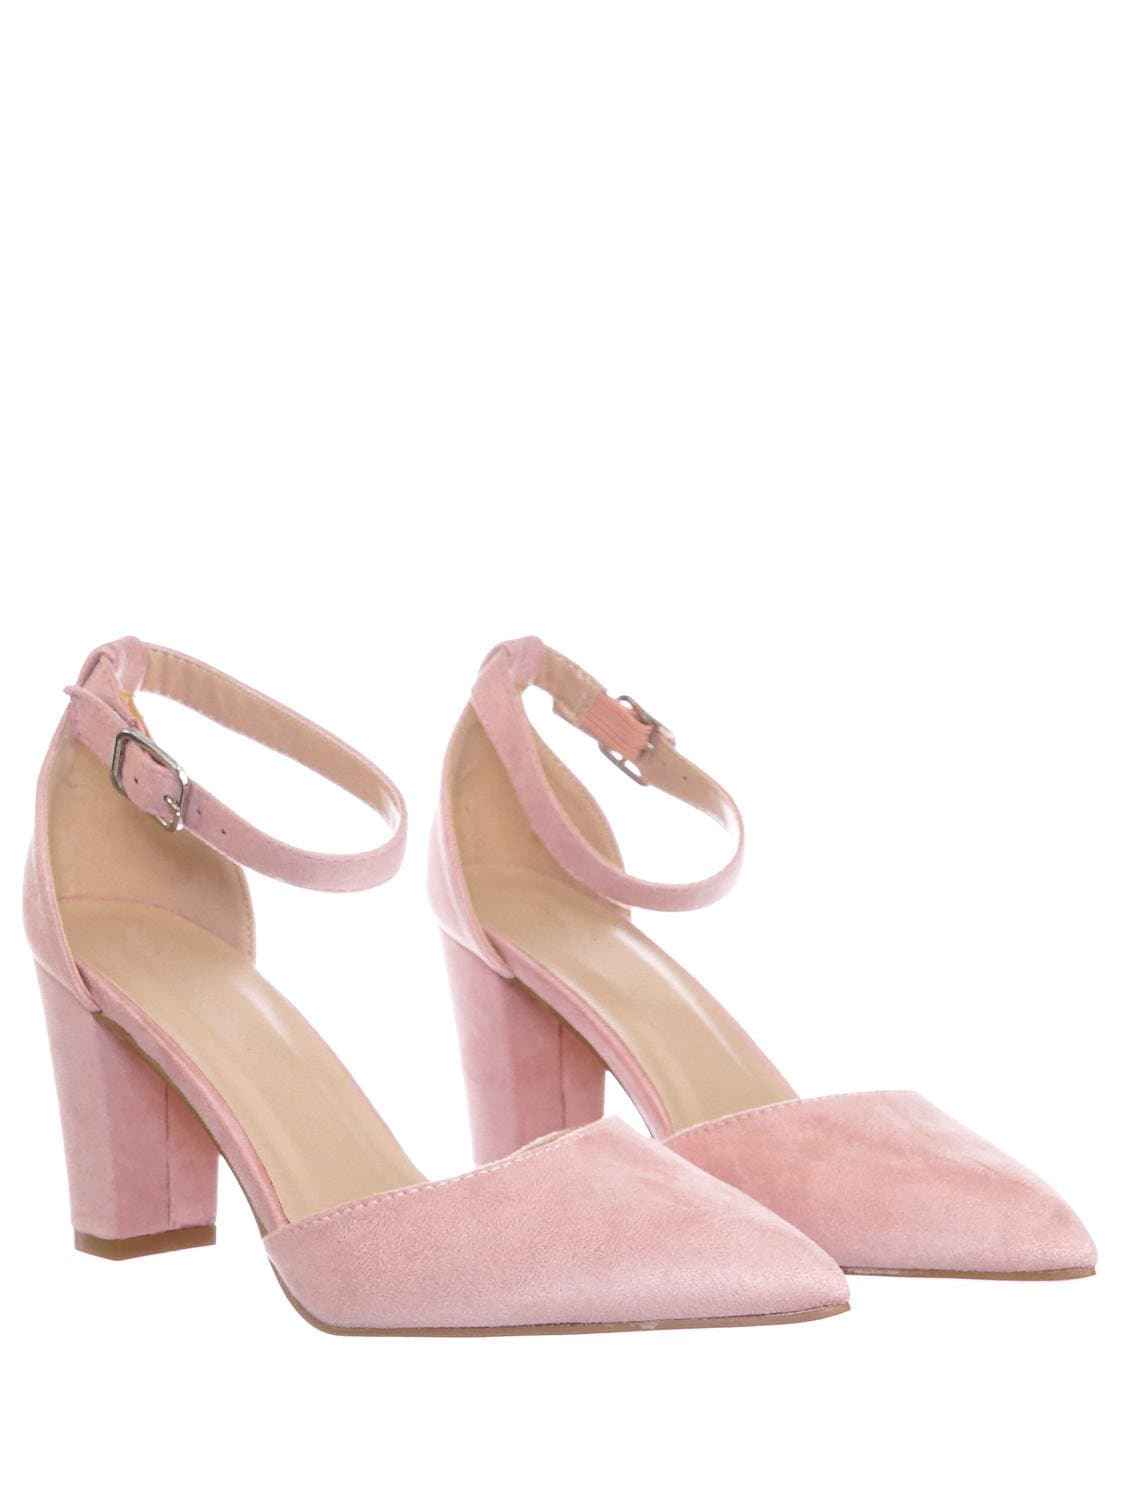 Songful6 DustyPink Retro Pointed Toe d'Orsay Chunky Block Heel Pump - Women Open Shank